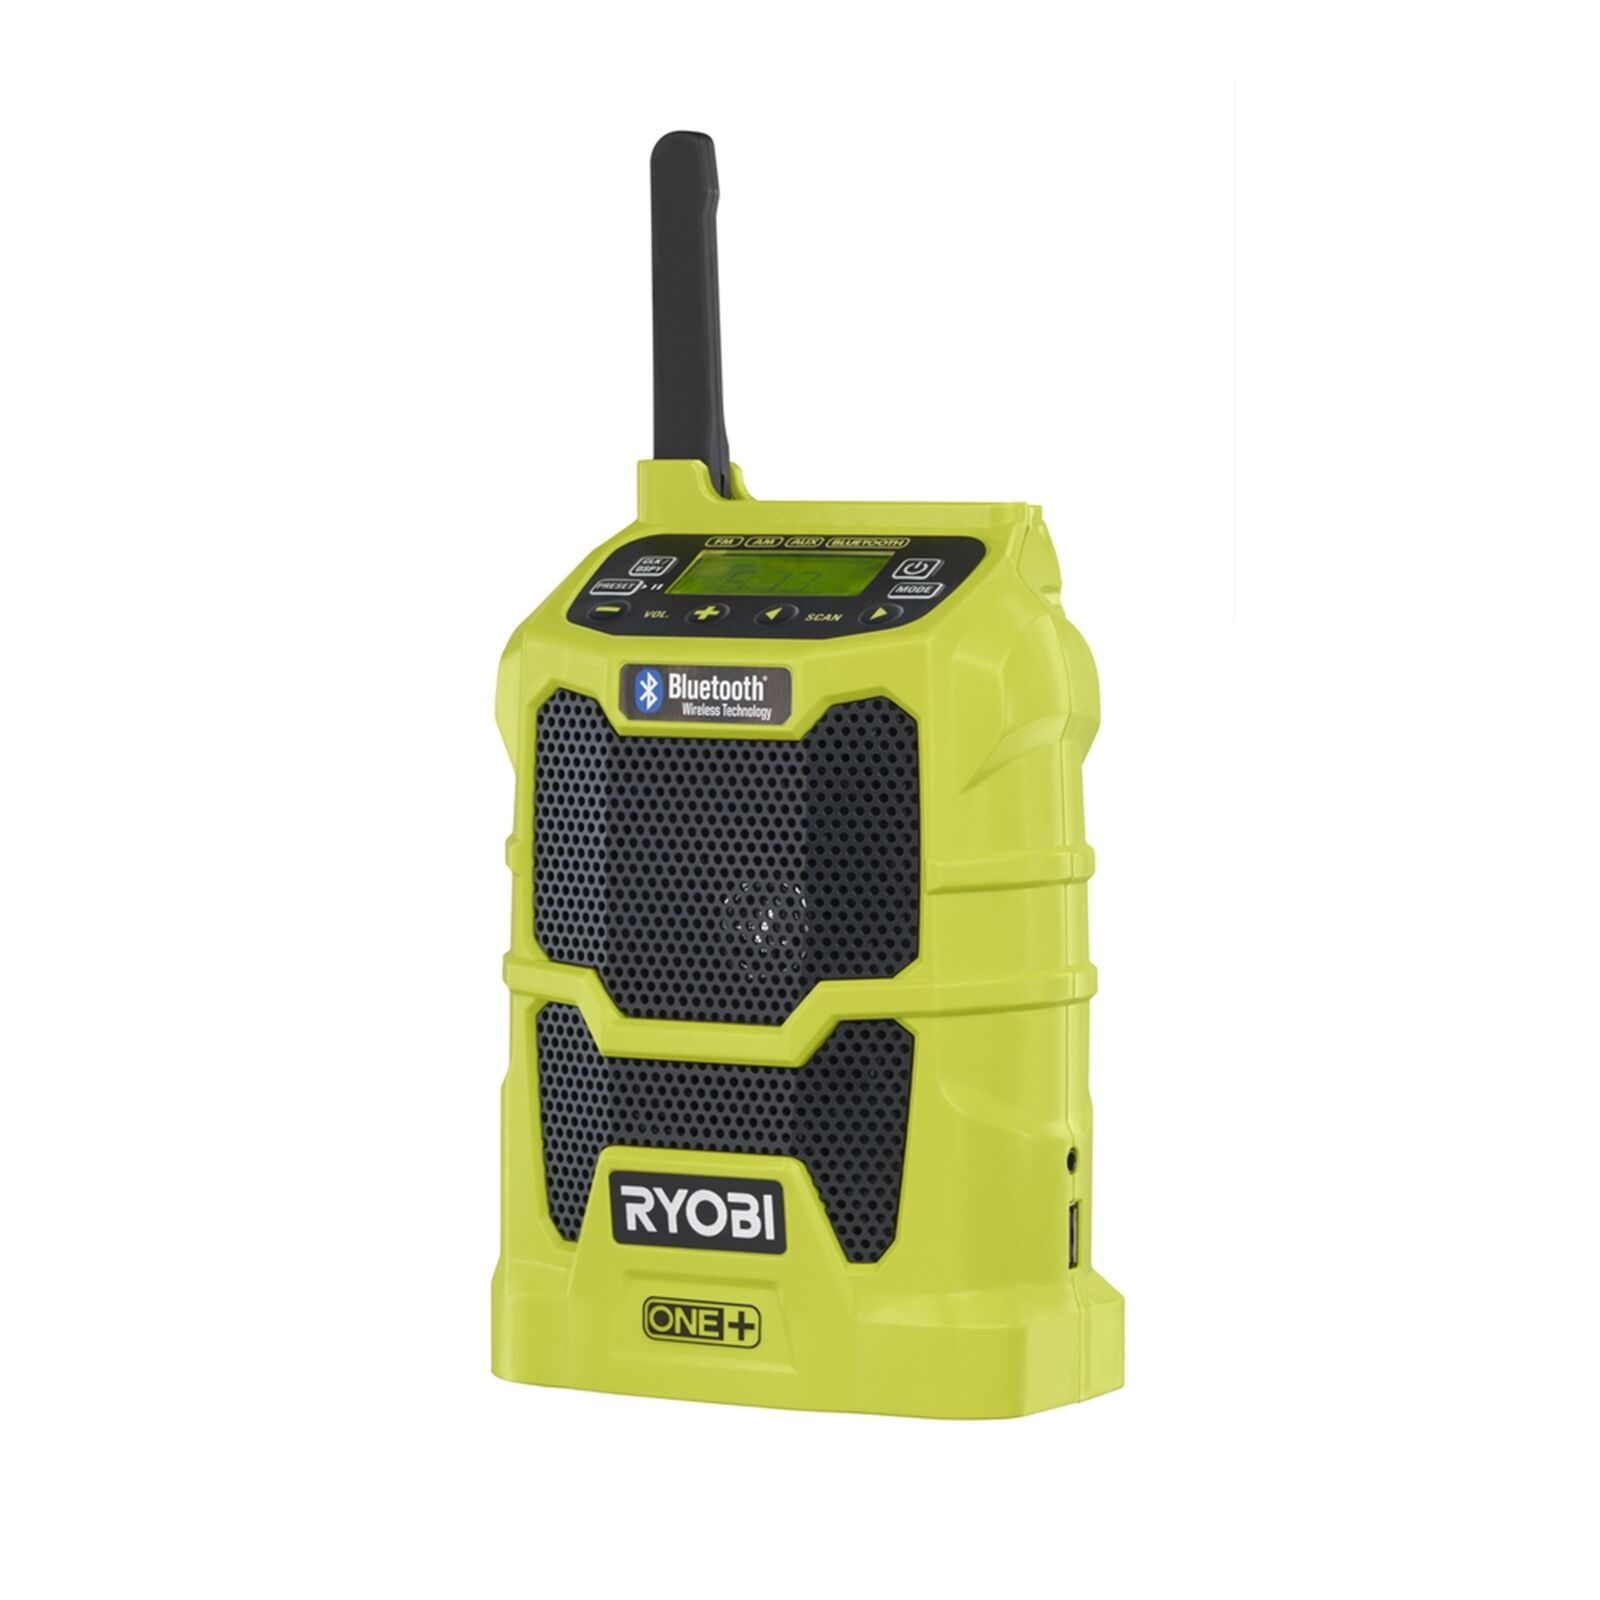 Ryobi ONE+ BlauTOOTH RADIO 18V Wireless, USB Charger & 20 Hrs Run Time R18R-0